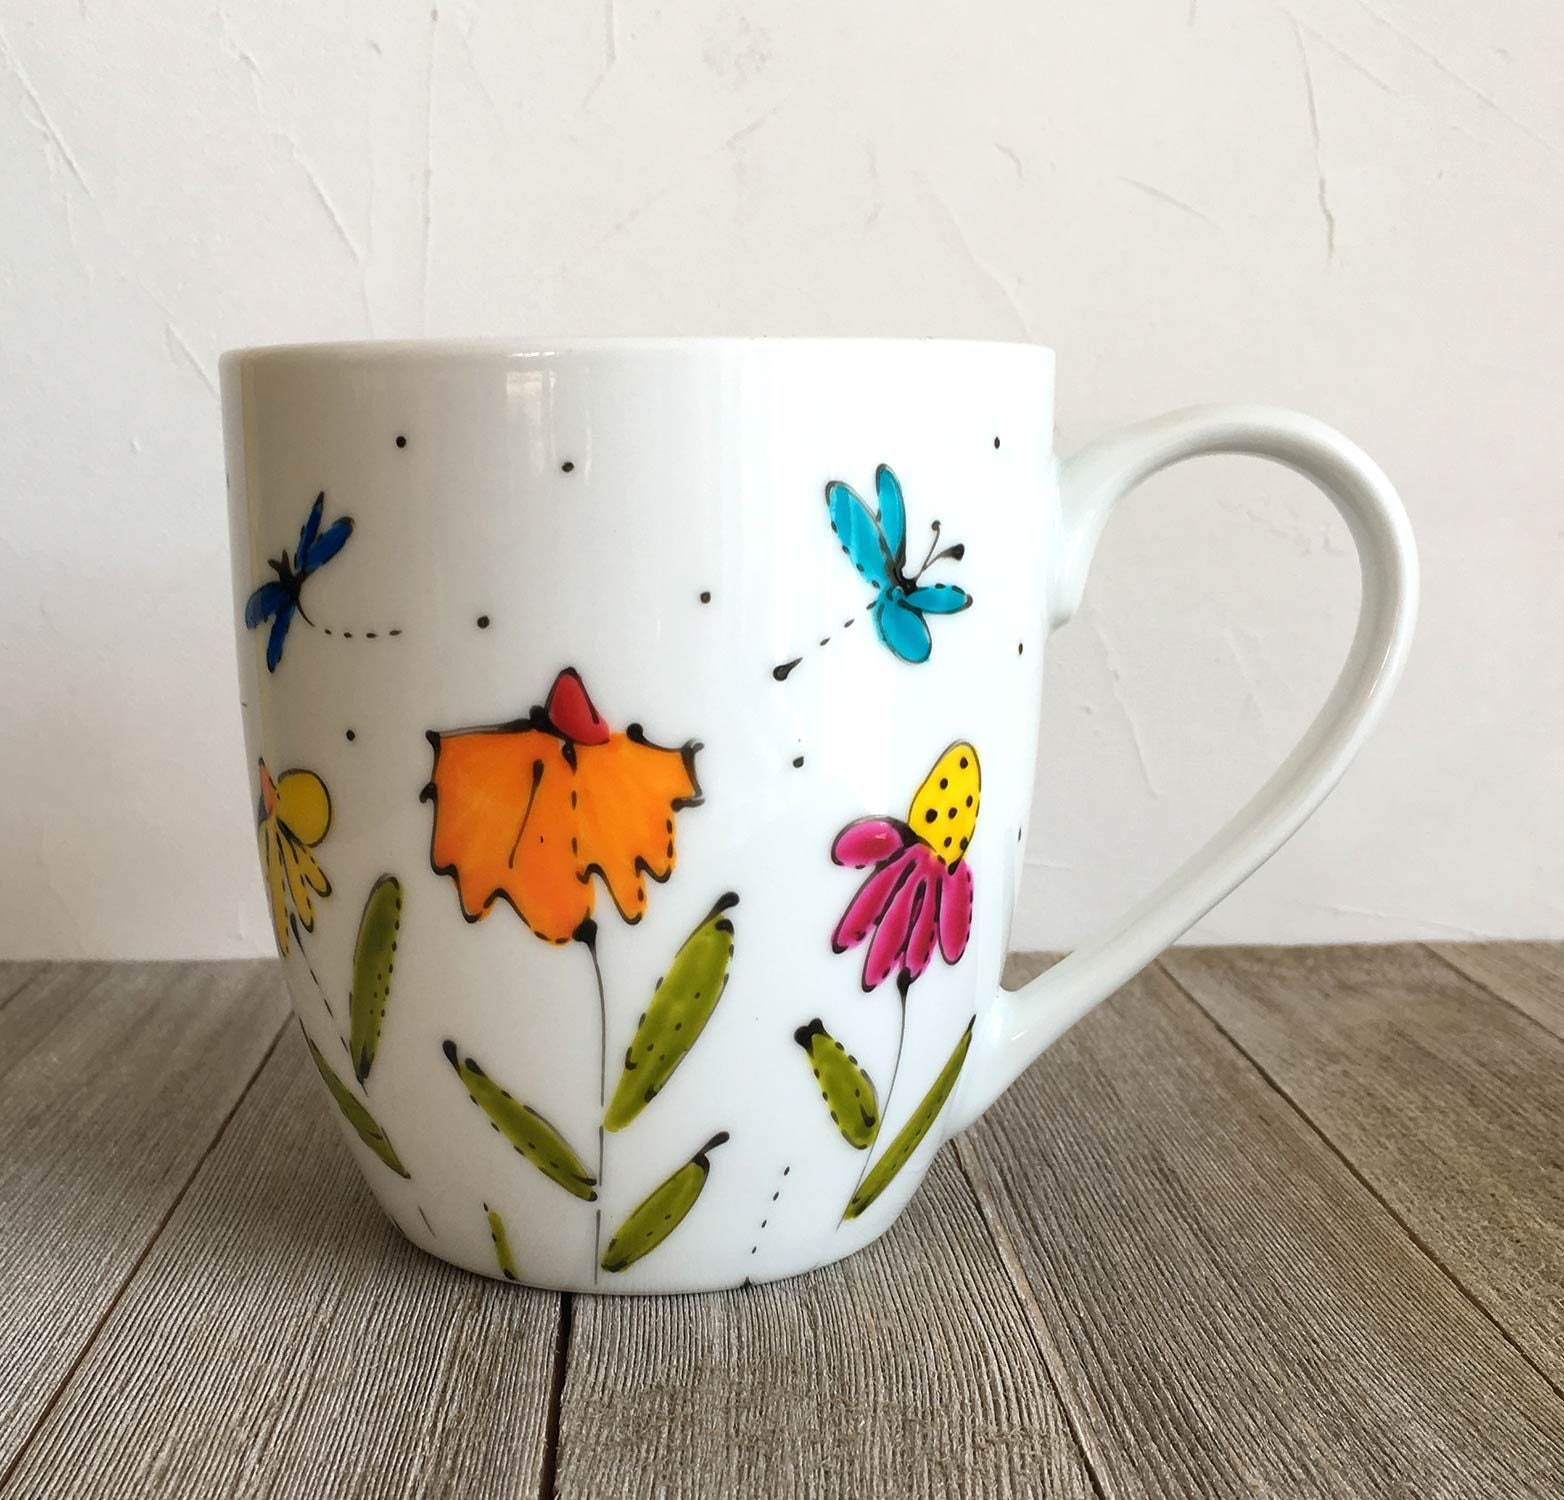 fb0c8d9233d Flower coffee mug tall, Porcelain, flowers and dragonfly, 16 oz, tea ...